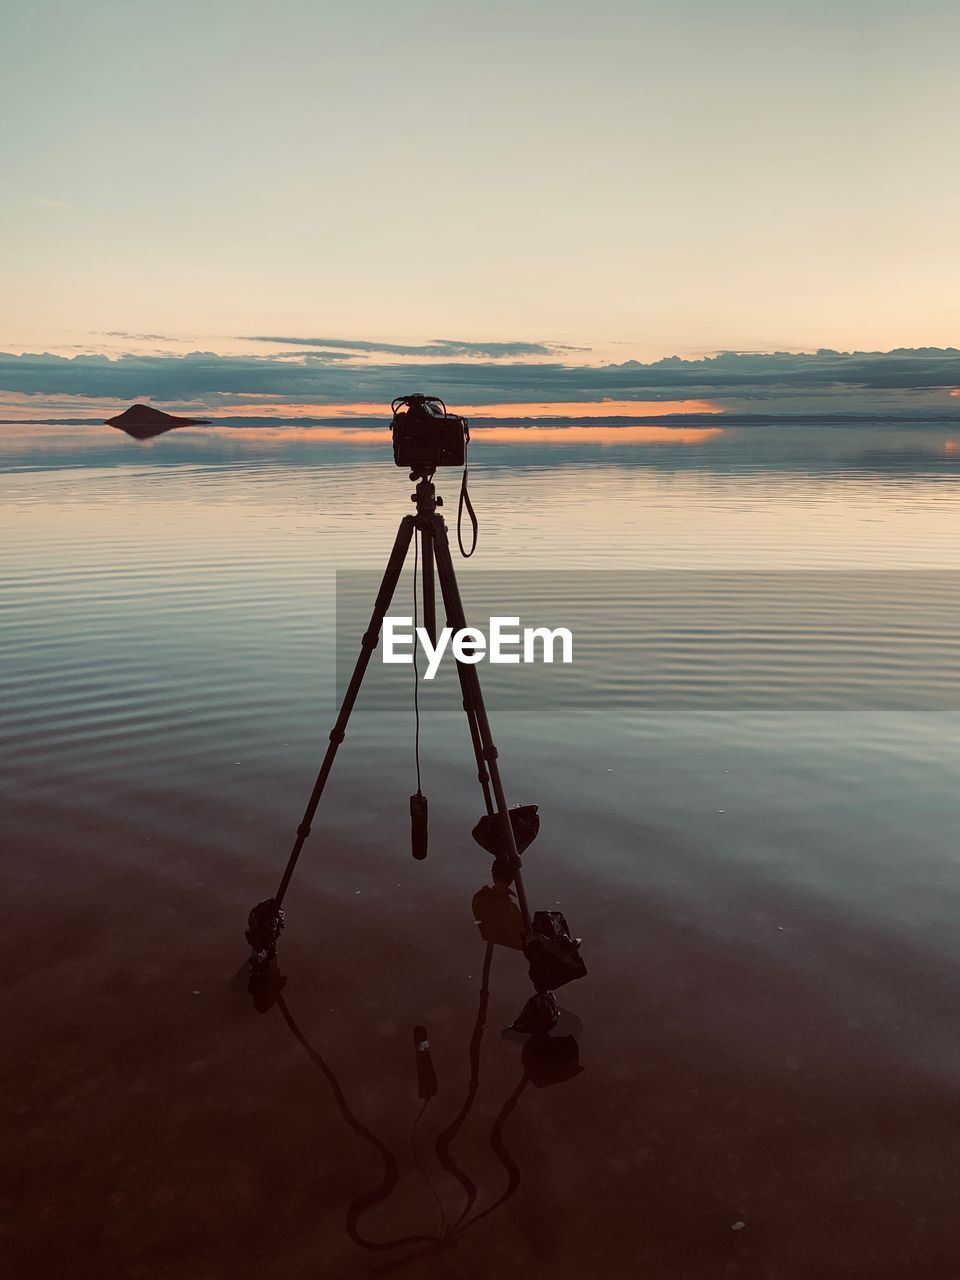 water, sky, sunset, tranquility, scenics - nature, beauty in nature, tranquil scene, reflection, photography themes, tripod, non-urban scene, lake, nature, no people, technology, standing water, camera - photographic equipment, waterfront, silhouette, outdoors, digital camera, salt flat